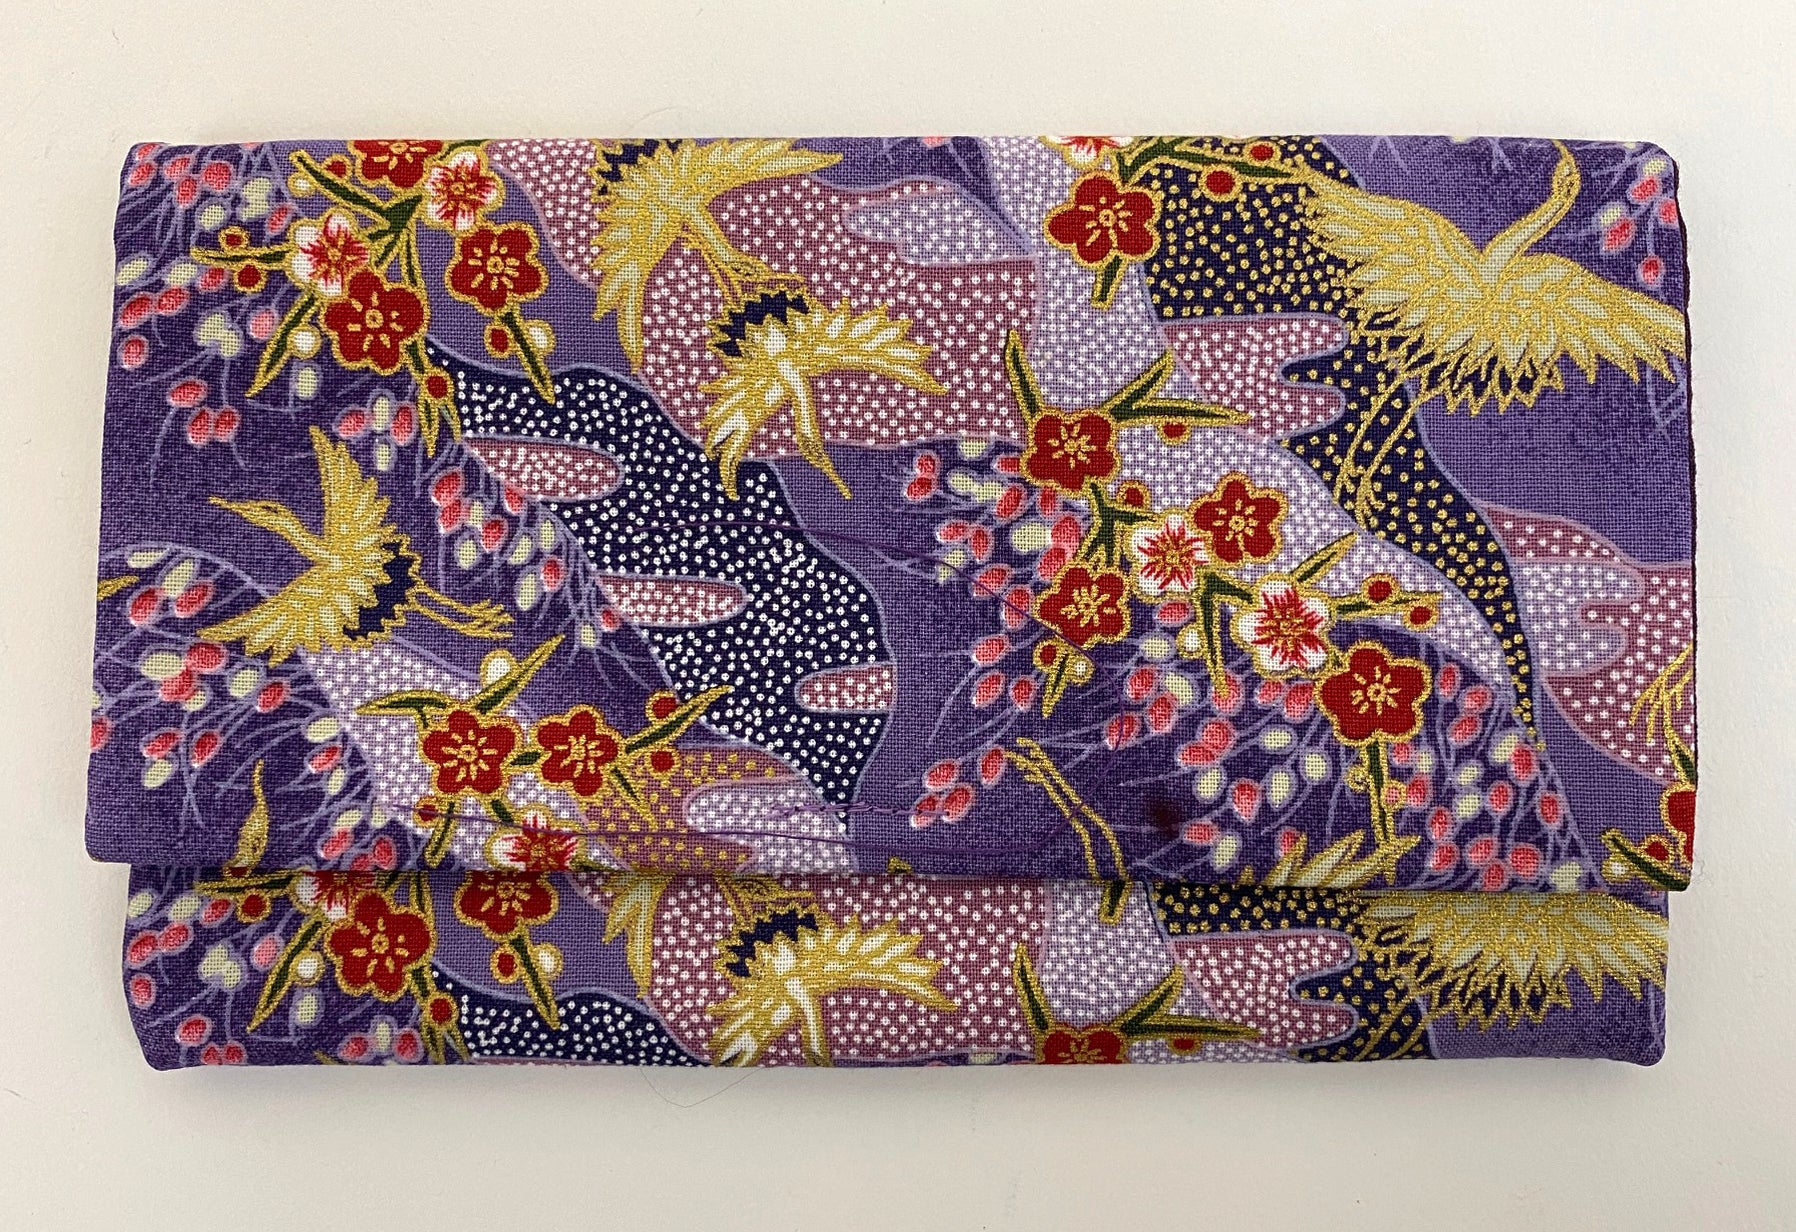 Premium Kimono Fabric Beads Case #2 (Medium)